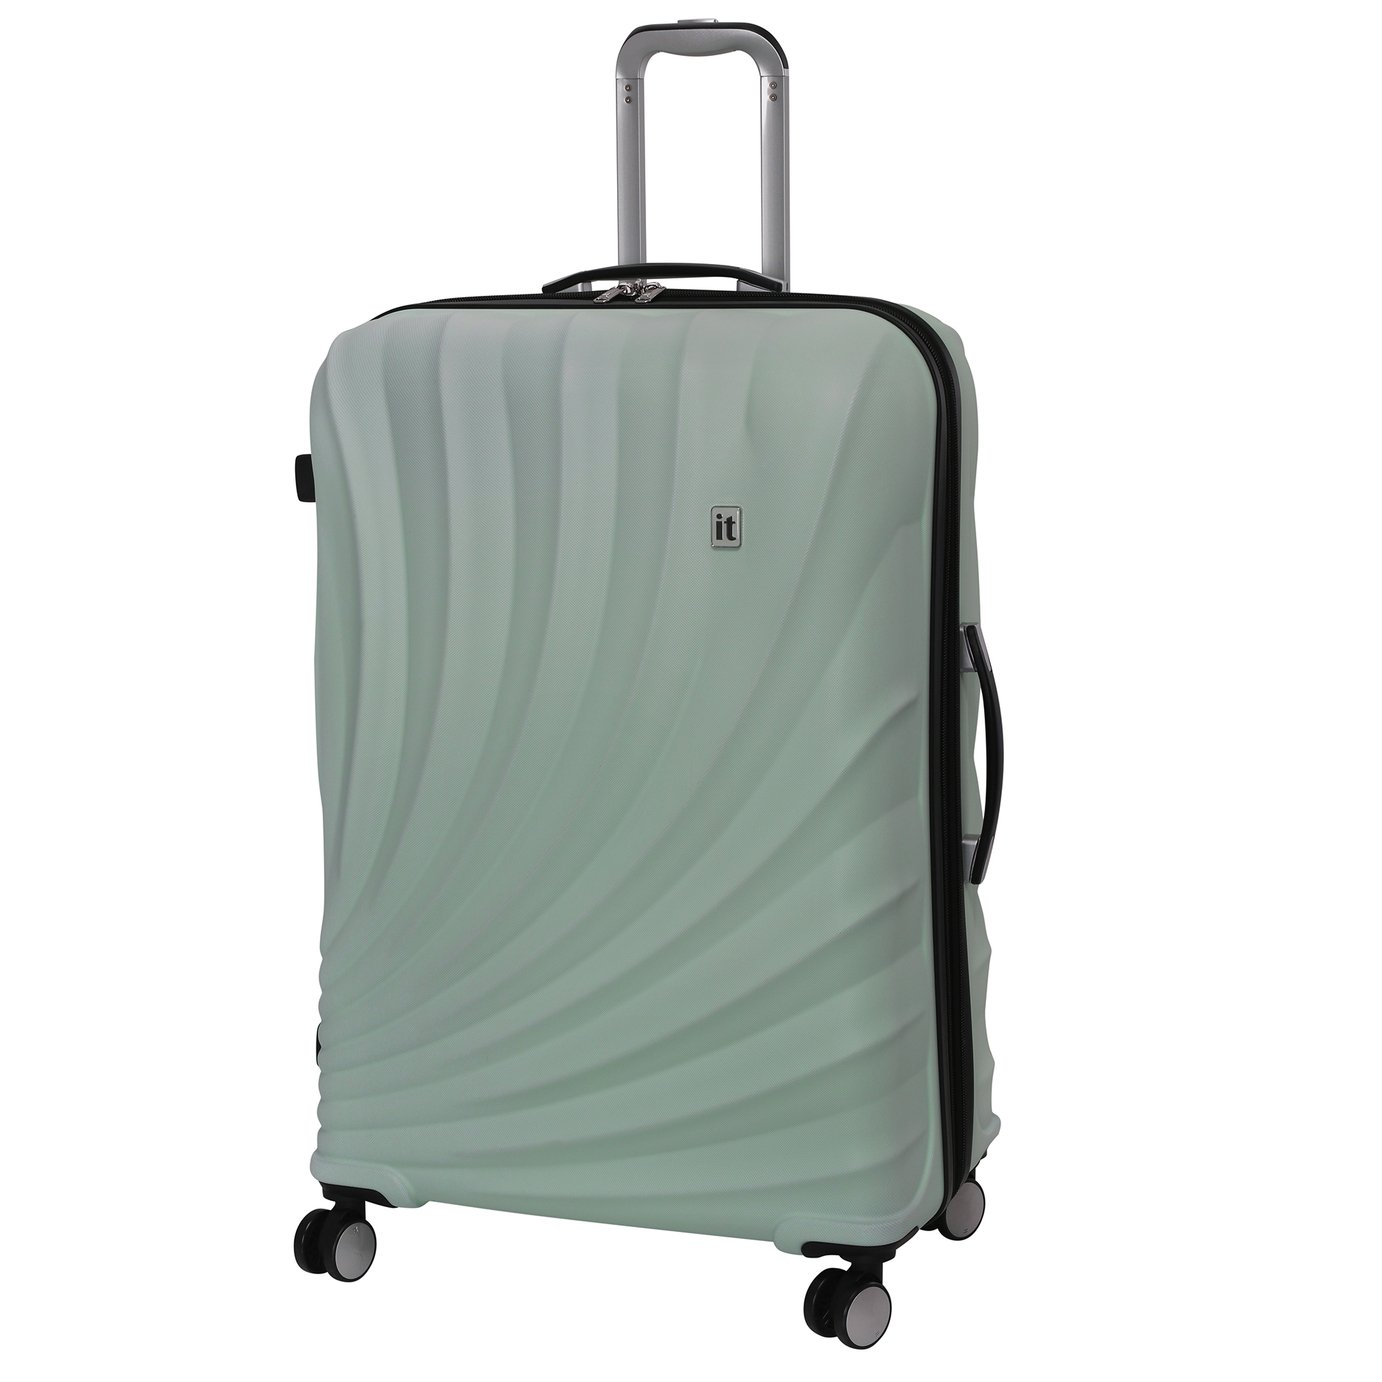 it Luggage Pagoda Large Expandable 8 Wheel Suitcase - Pastel